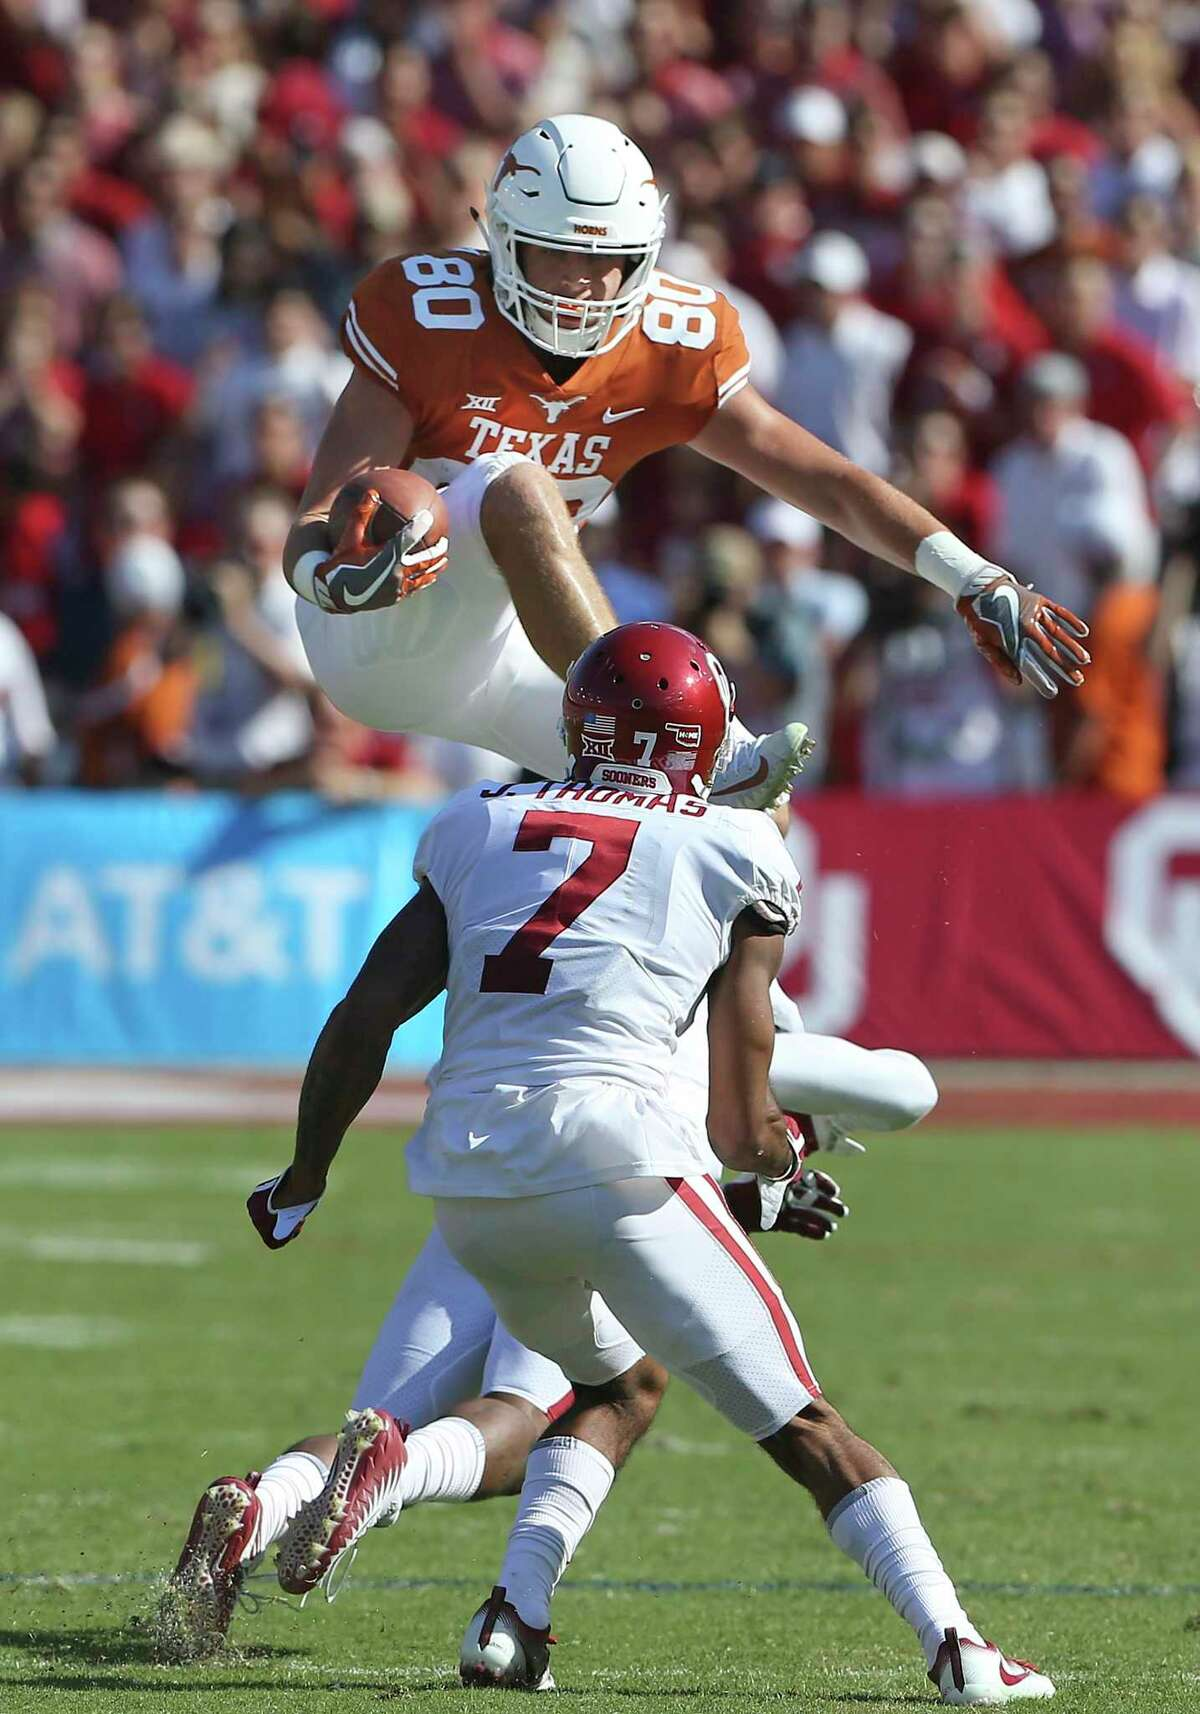 Cade Brewer is set to become the primary tight end for Texas this season after catching 11 passes for 99 yards and two touchdowns in limited action the previous two seasons.